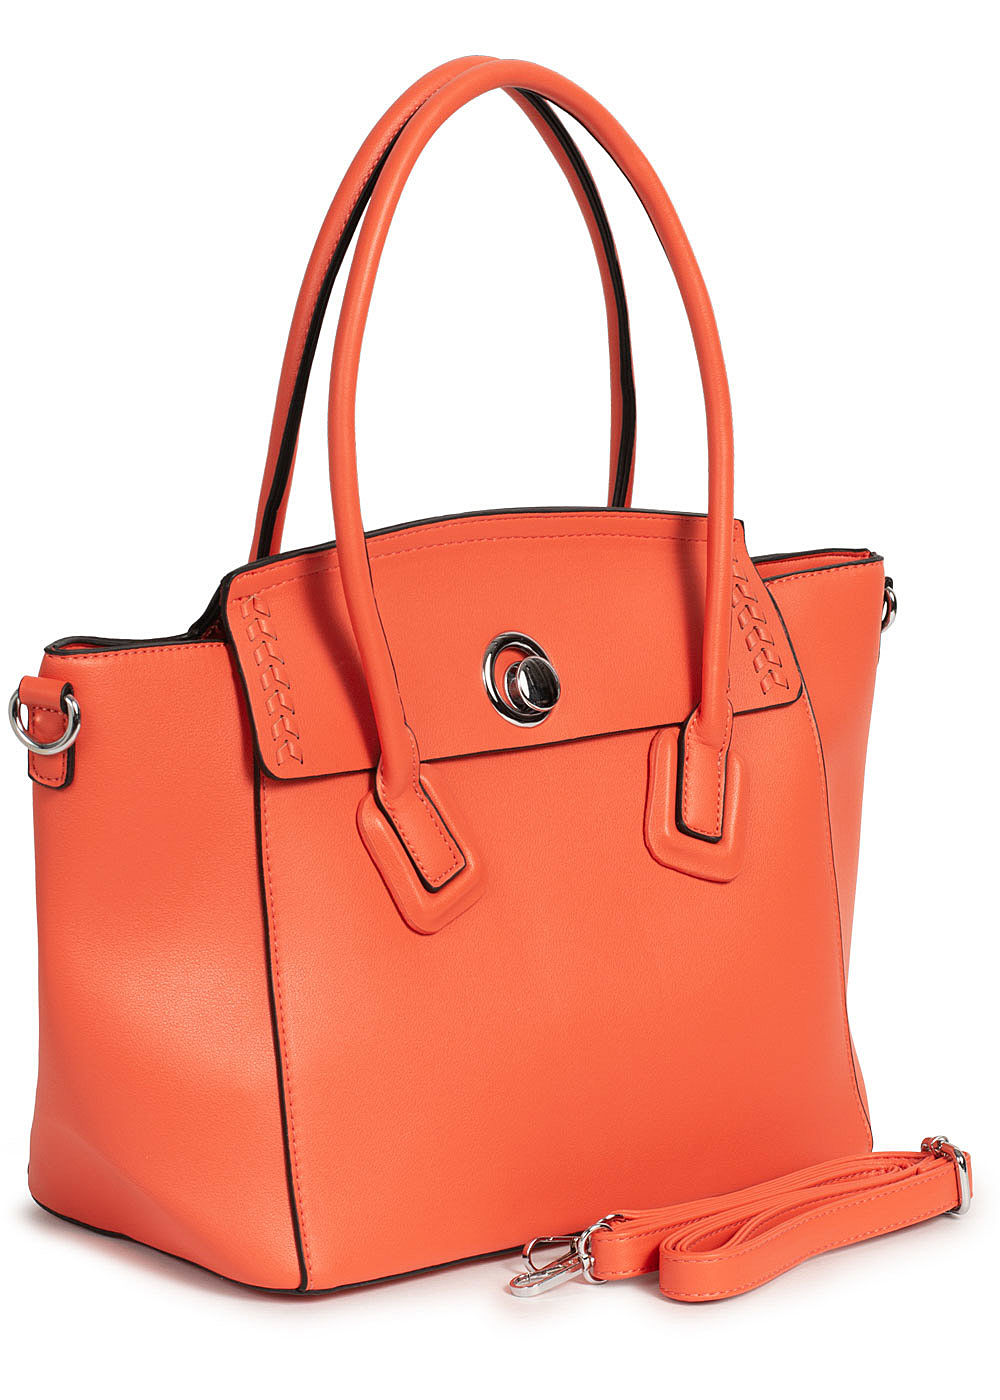 Styleboom Fashion Damen Kunstleder Handtasche 49x29cm sehr stabil orange - Art.-Nr.: 20041752-OS-OR